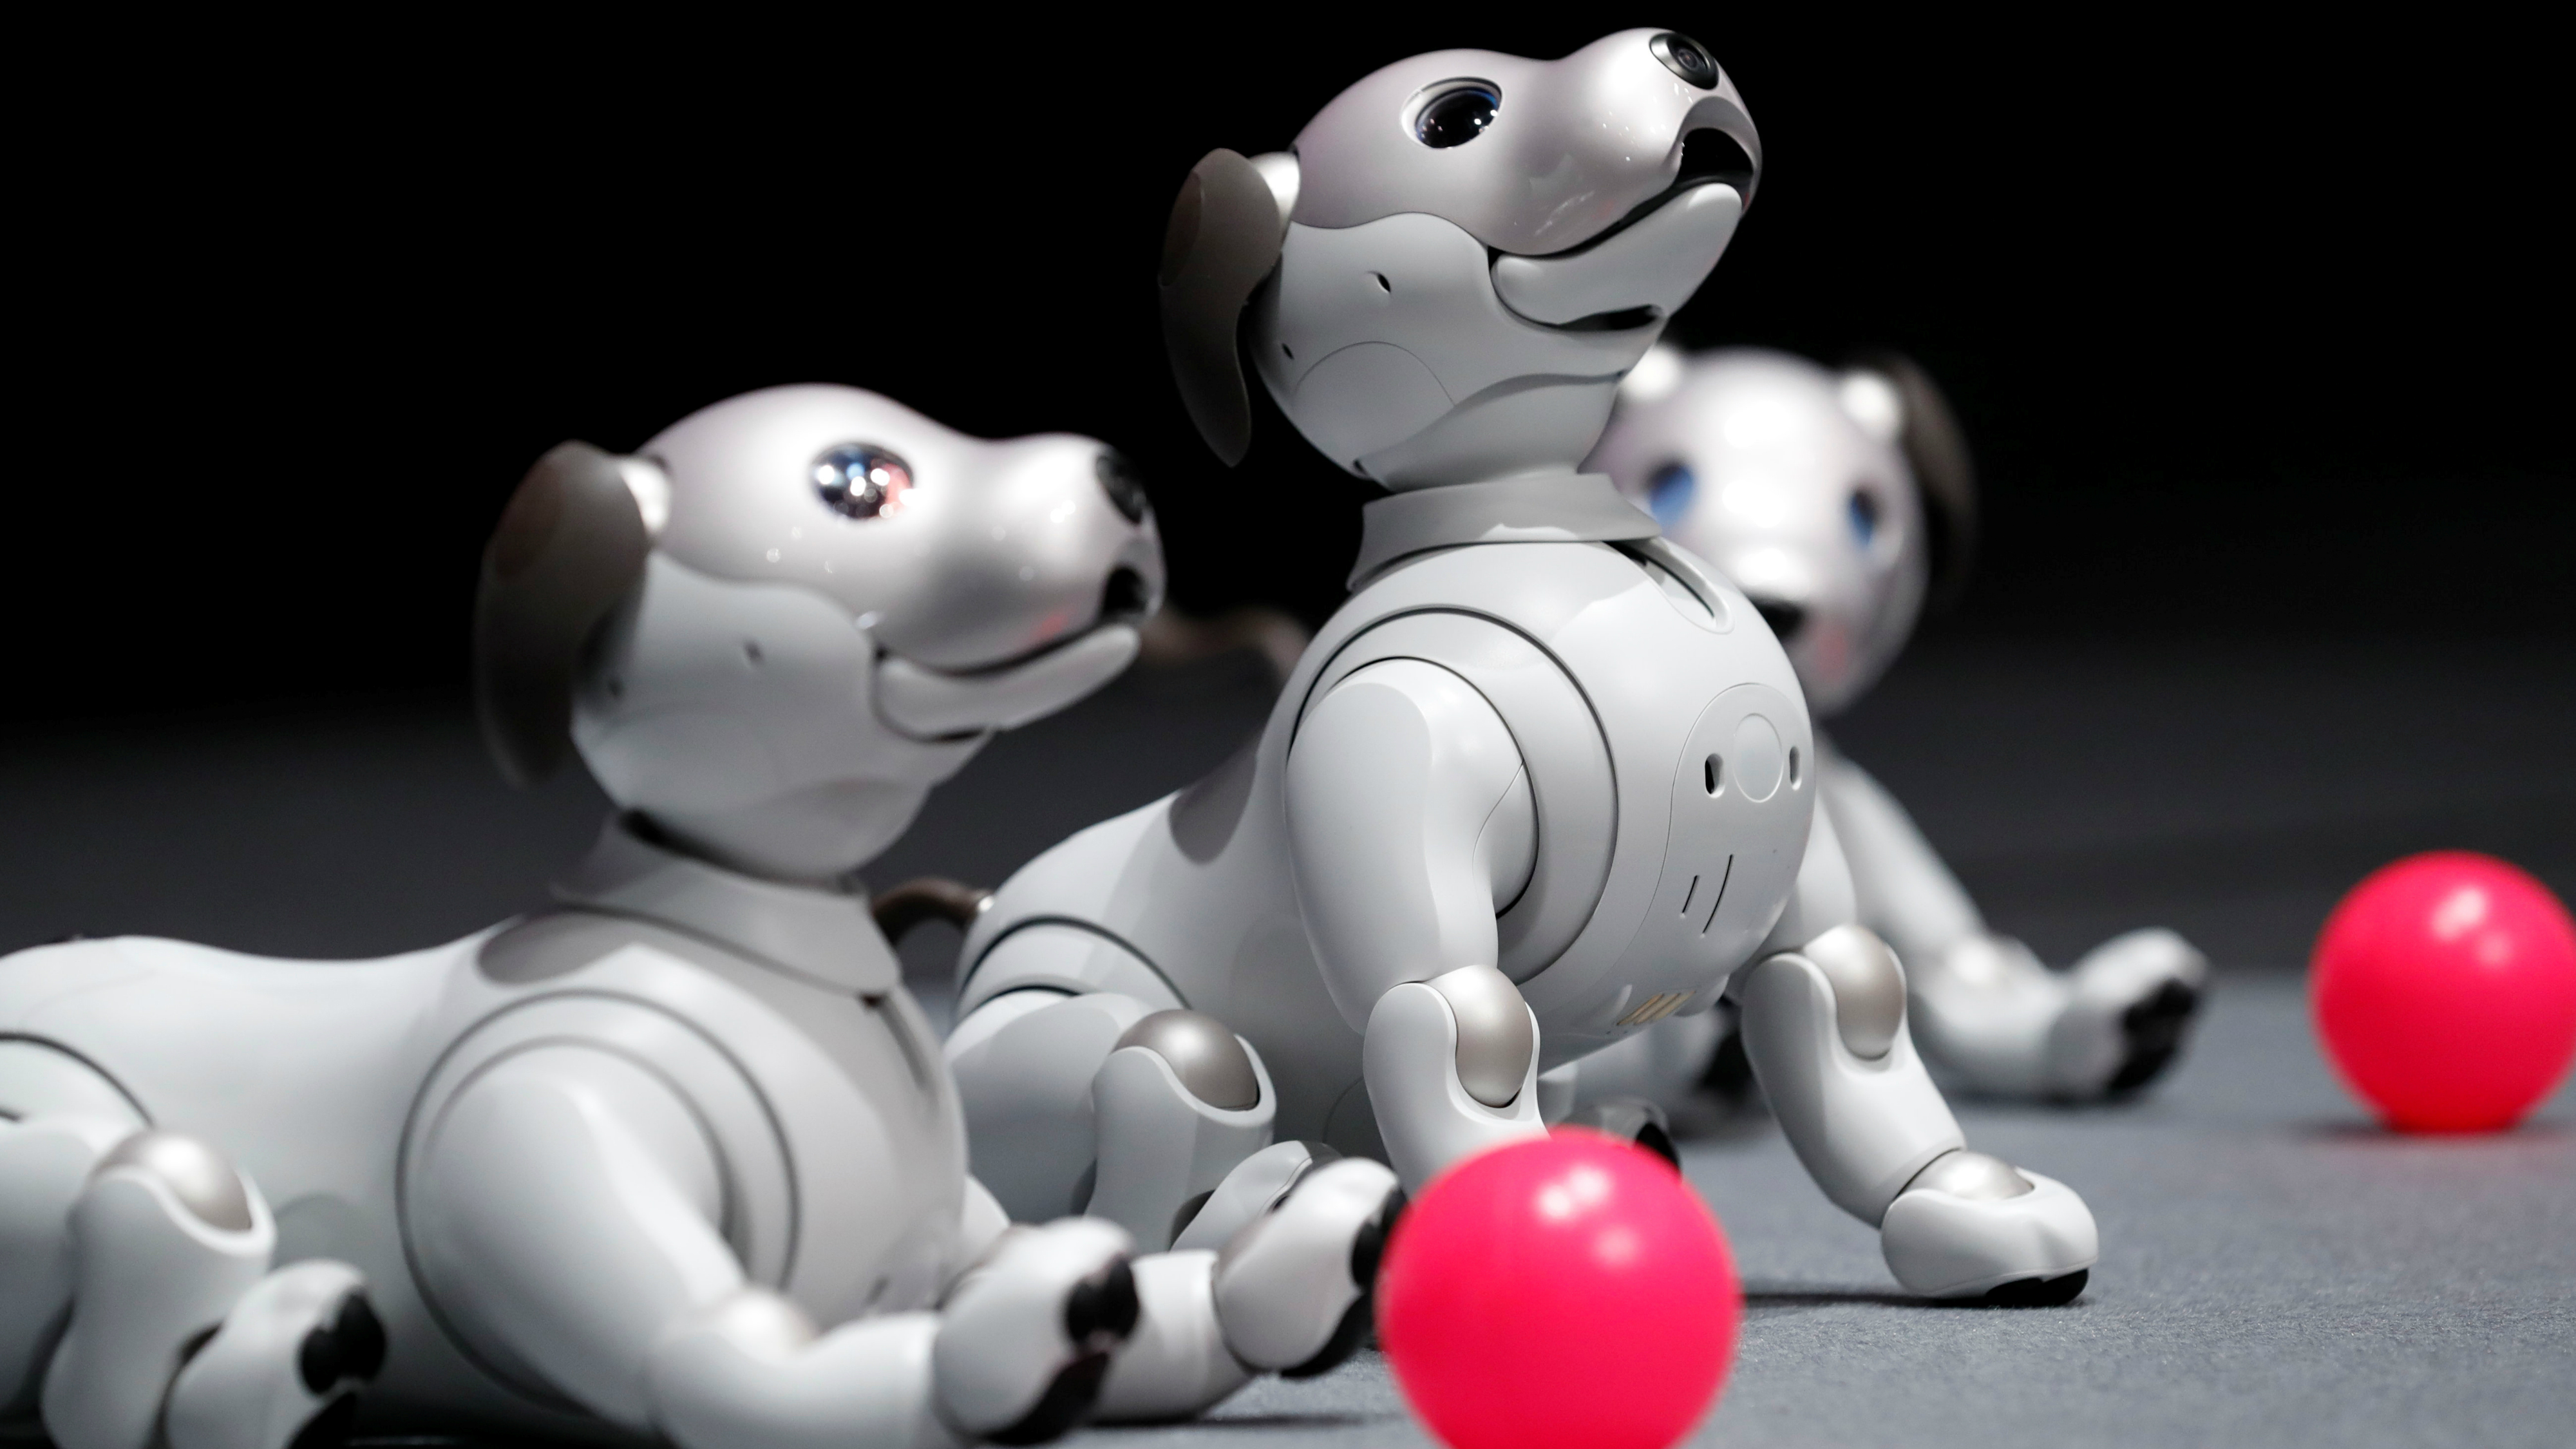 Dog robots playing with a ball.